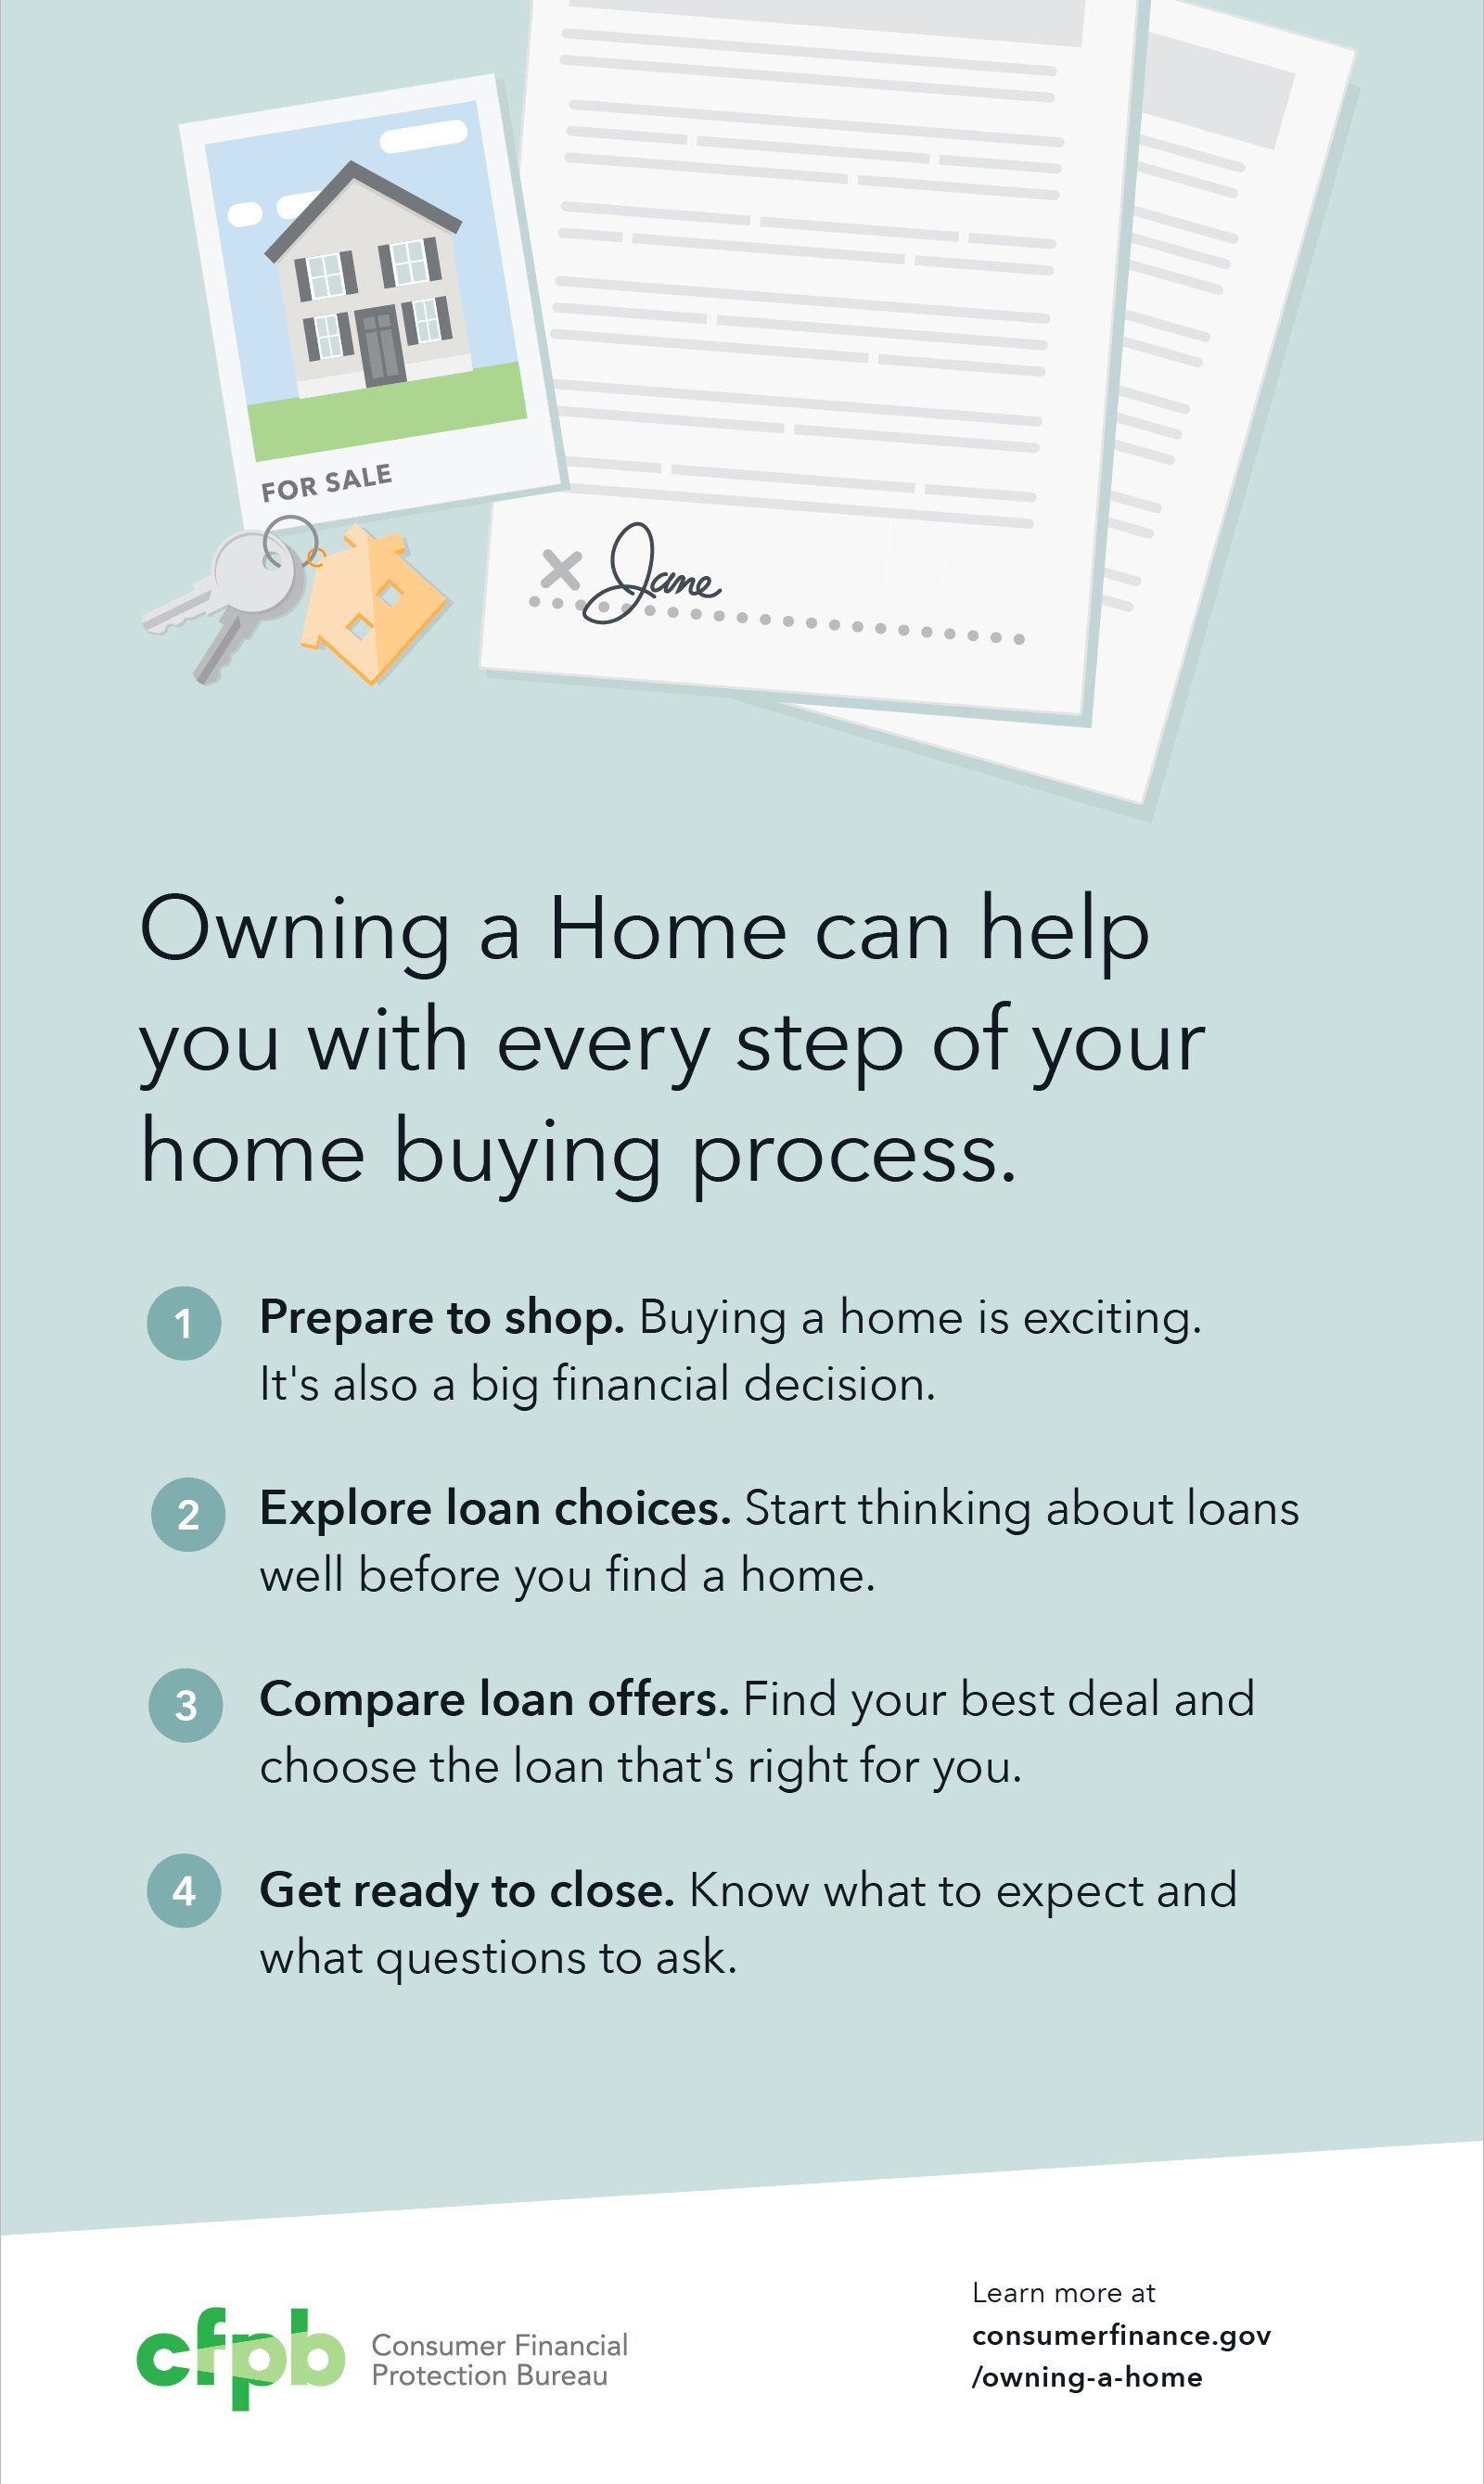 worksheet Mortgage Shopping Worksheet owning a home the homebuyers trusted resource consumer 5 it helps you every step of way